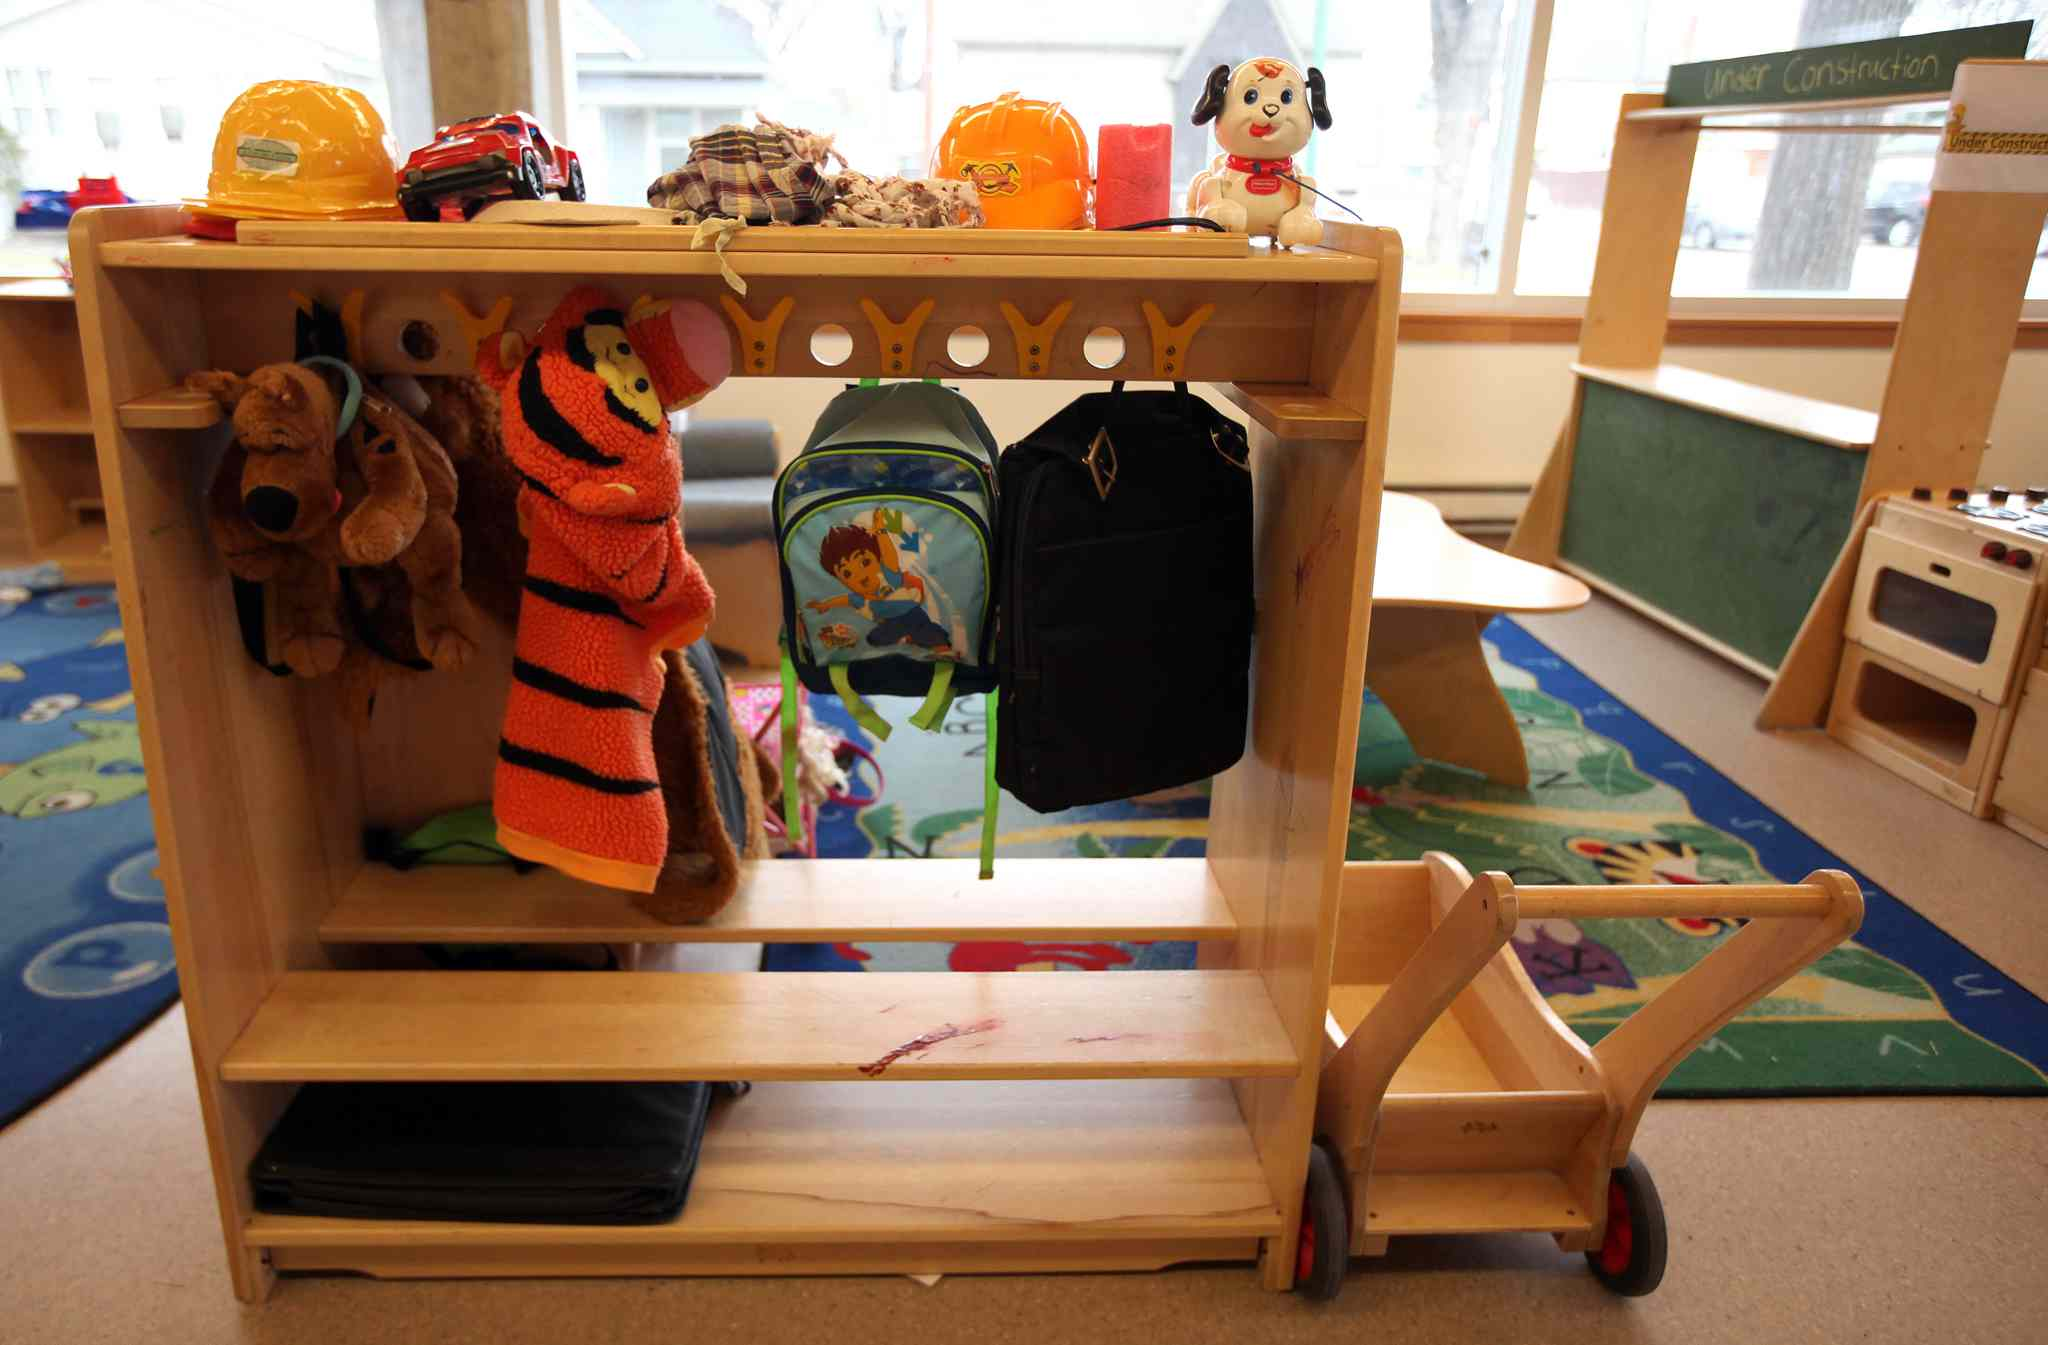 Earlier this week, the province's auditor general released an update on 25 recommendations made more than two years ago to improve the province's oversight and management of child care. Only six had been fully implemented.